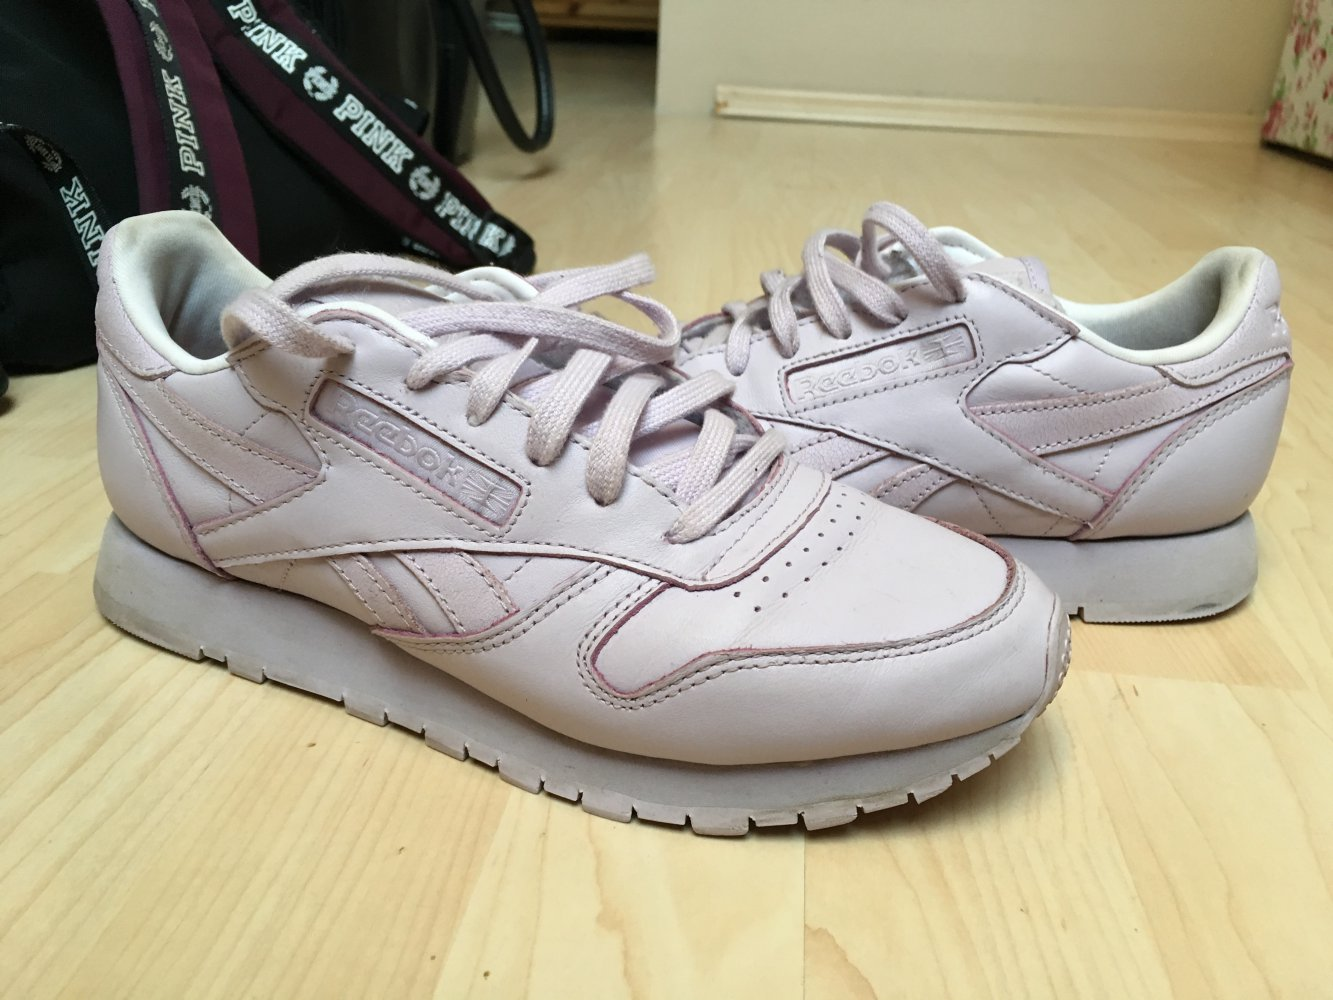 Reebok Classic Leather Schuhe Gr. 38